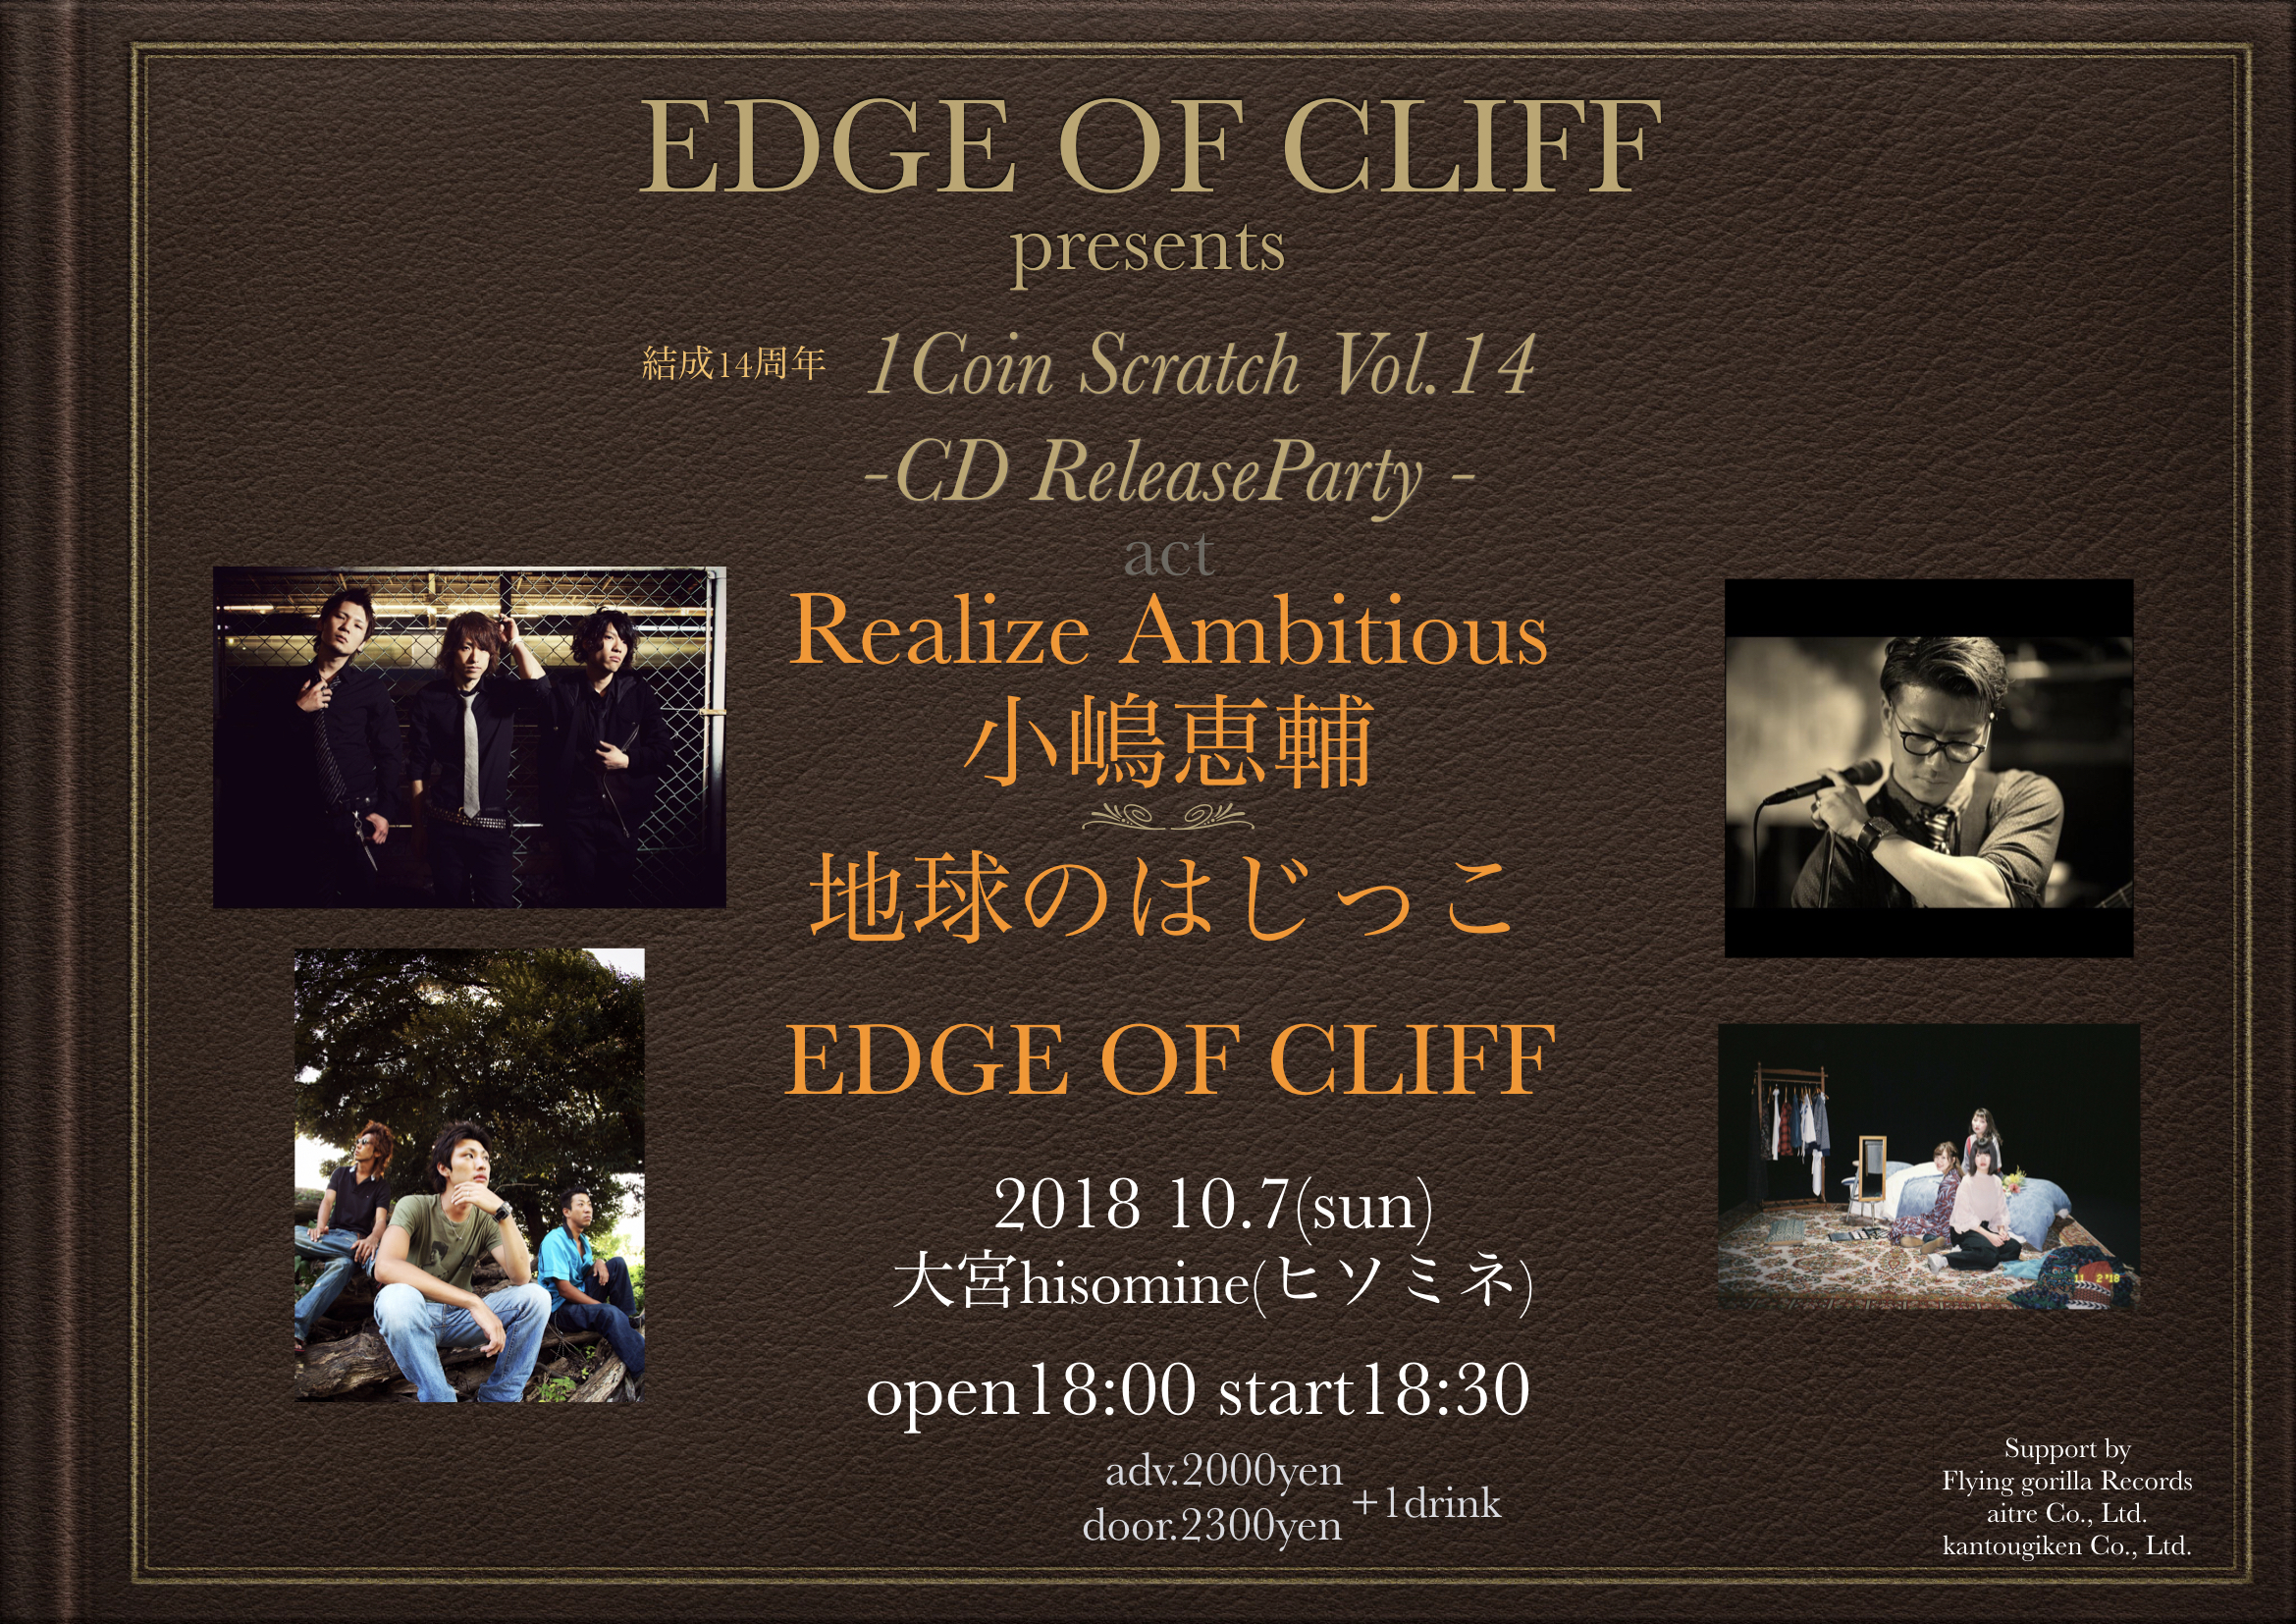 EDGE OF CLIFF presents 1Coin Scratch Vol.14